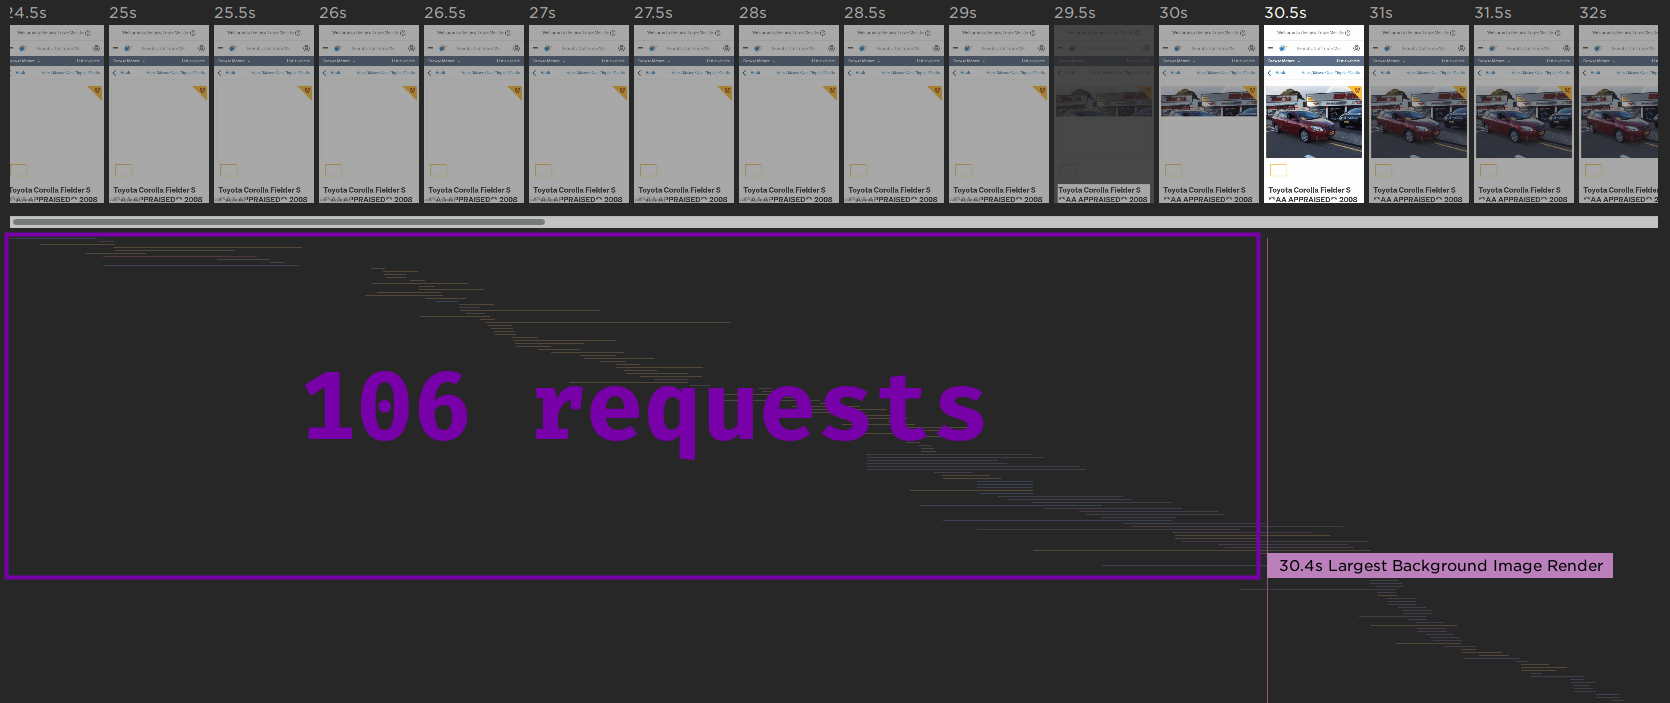 Waterfall chart showing the number of requests before the primary image is rendered